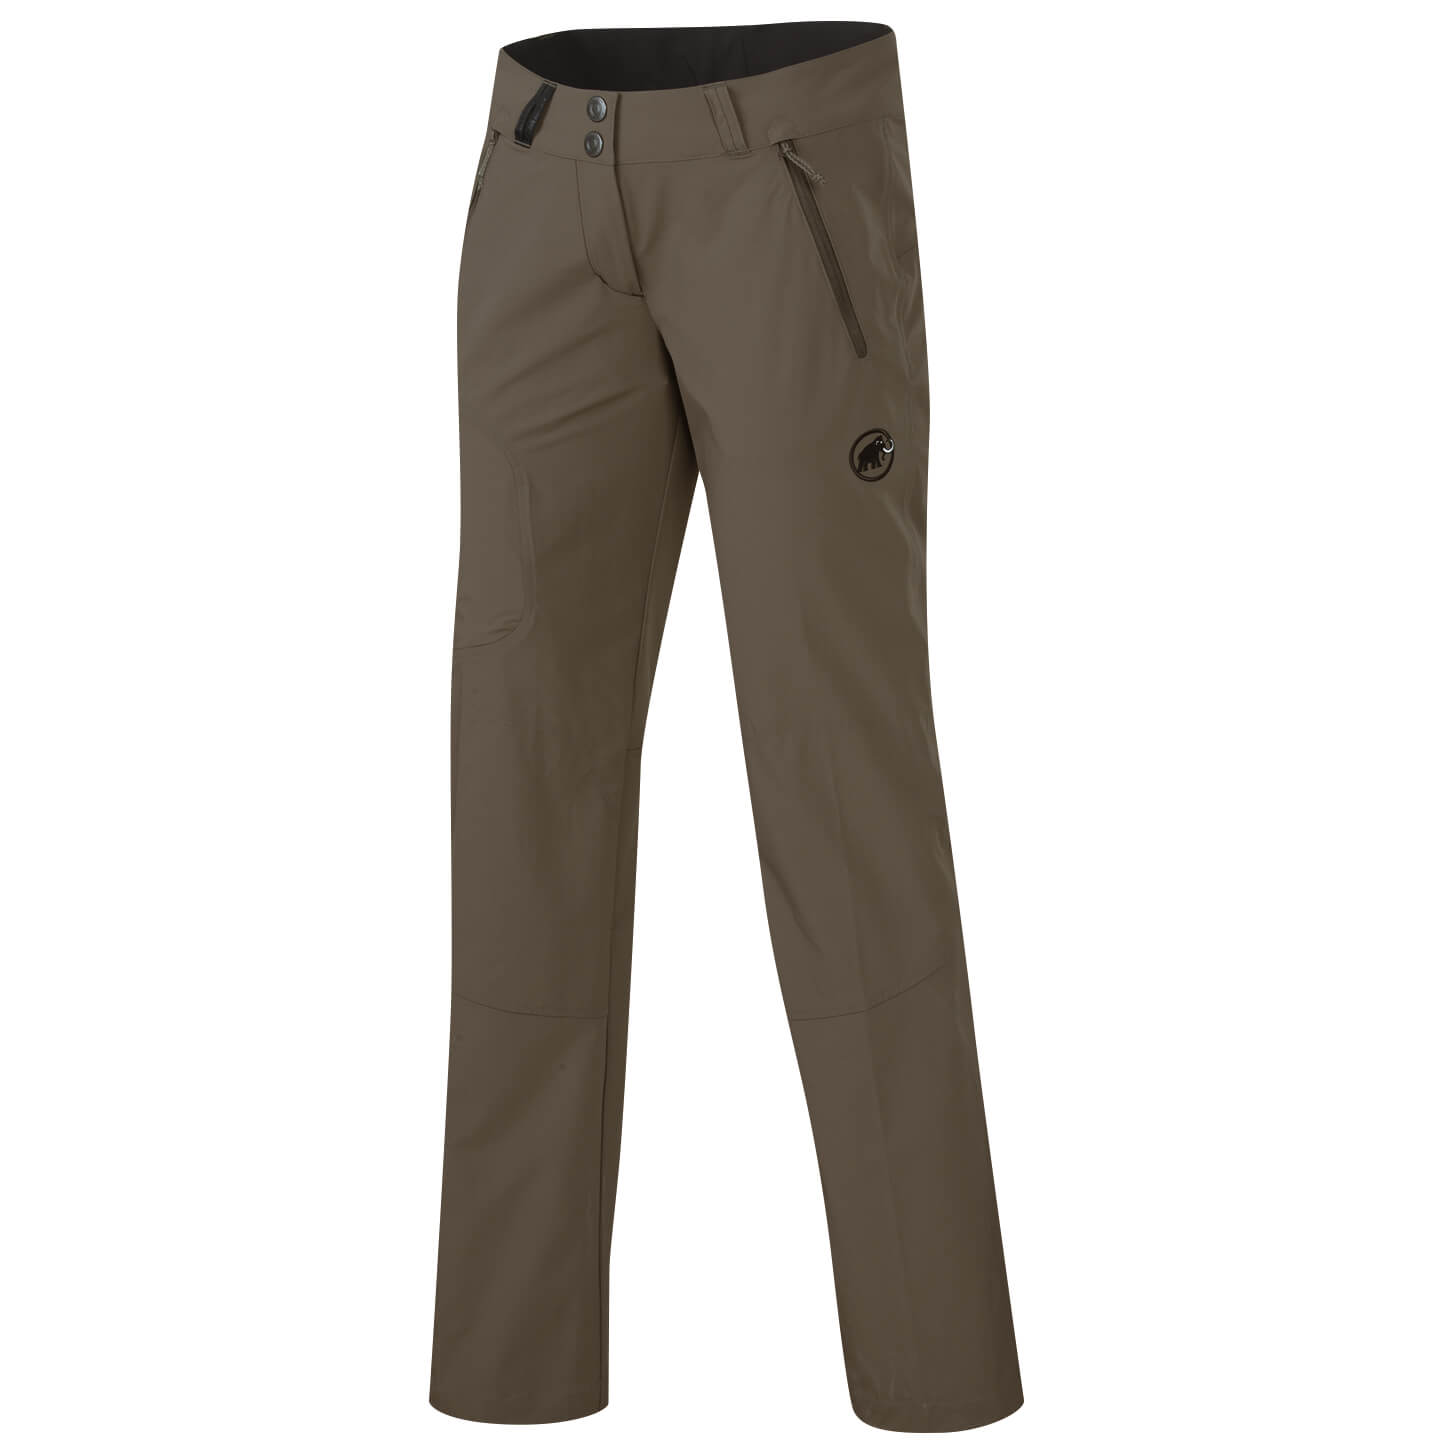 Elegant The Problem Is Only That When You Walk Through Bushy Areas, Black Jacks Stick Onto Your Clothing Buying Proper Hiking Pants Is Important, Theyre Breathable, Dryfast They Dry Quickly When Wet And Have Multiple Zips In Order To Be Able To